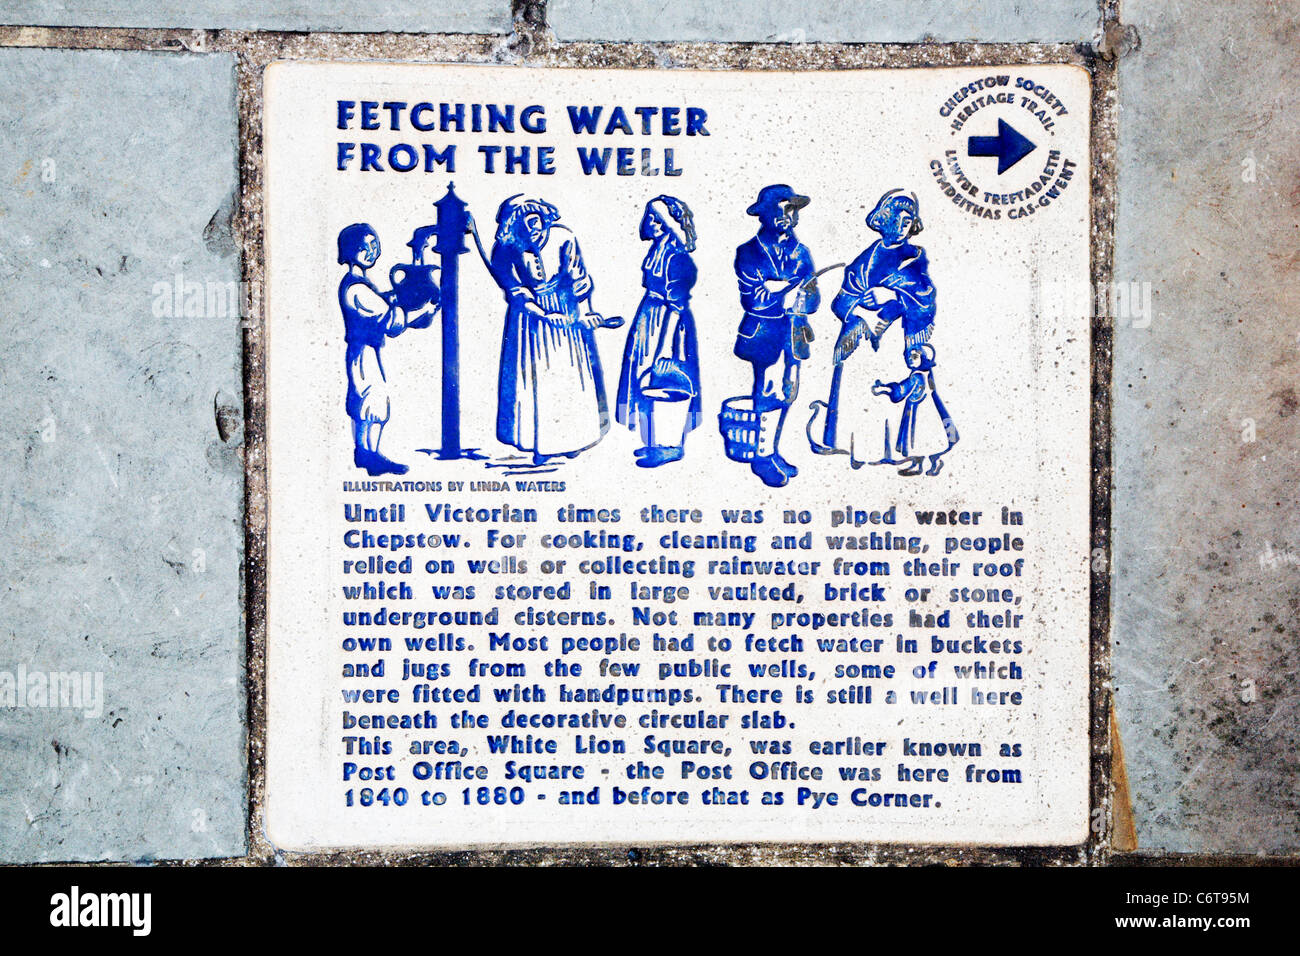 Fetching Water from the Well Chepstow Monmouthshire Wales - Stock Image